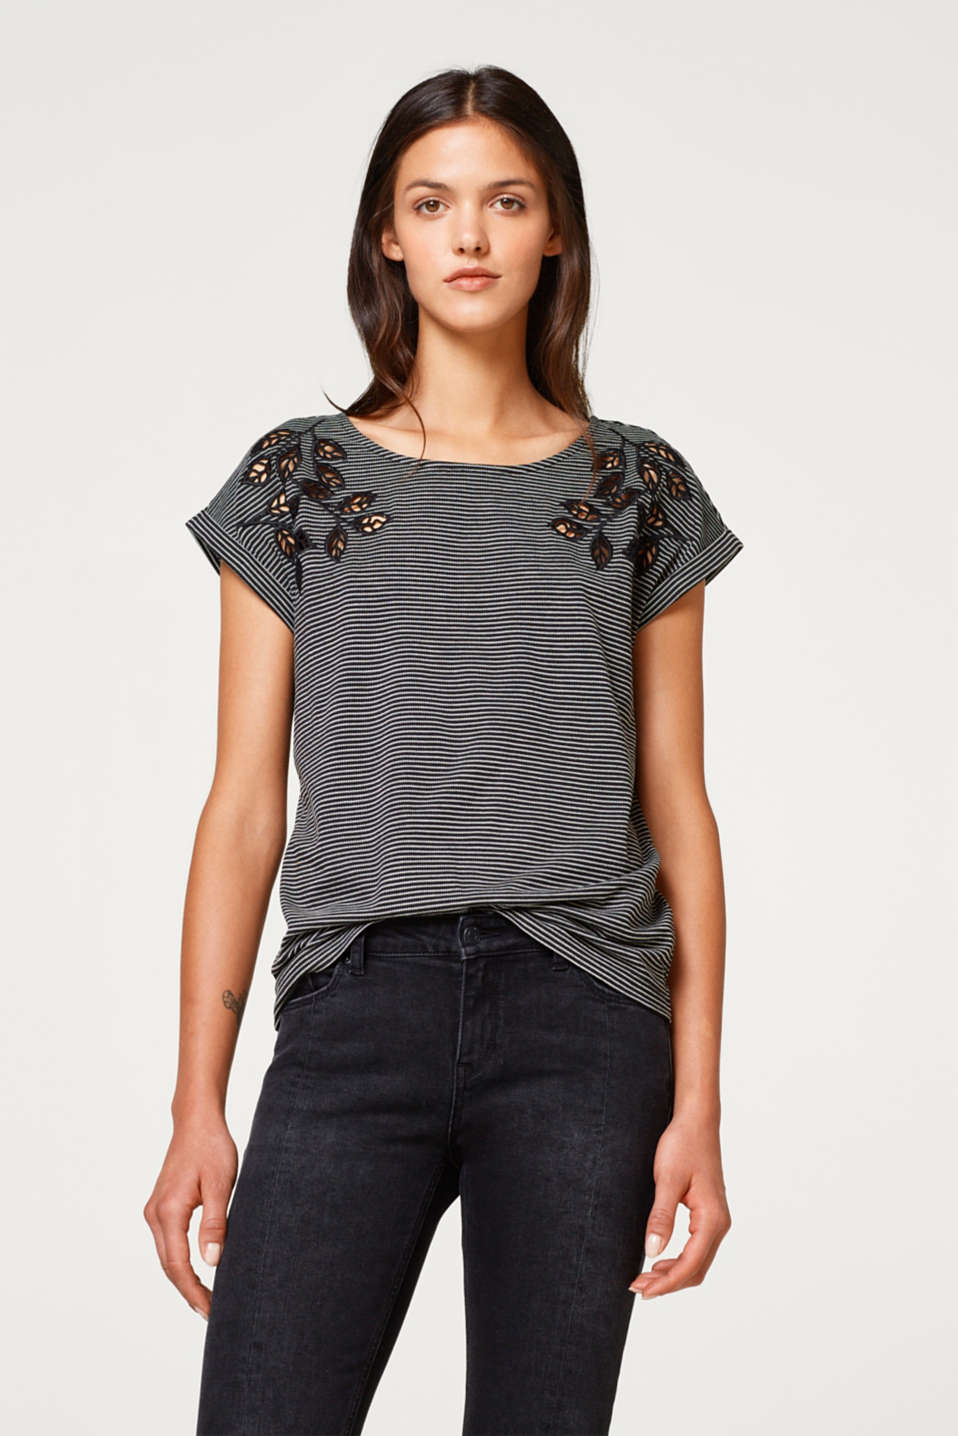 Esprit - Striped T-shirt featuring broderie anglaise